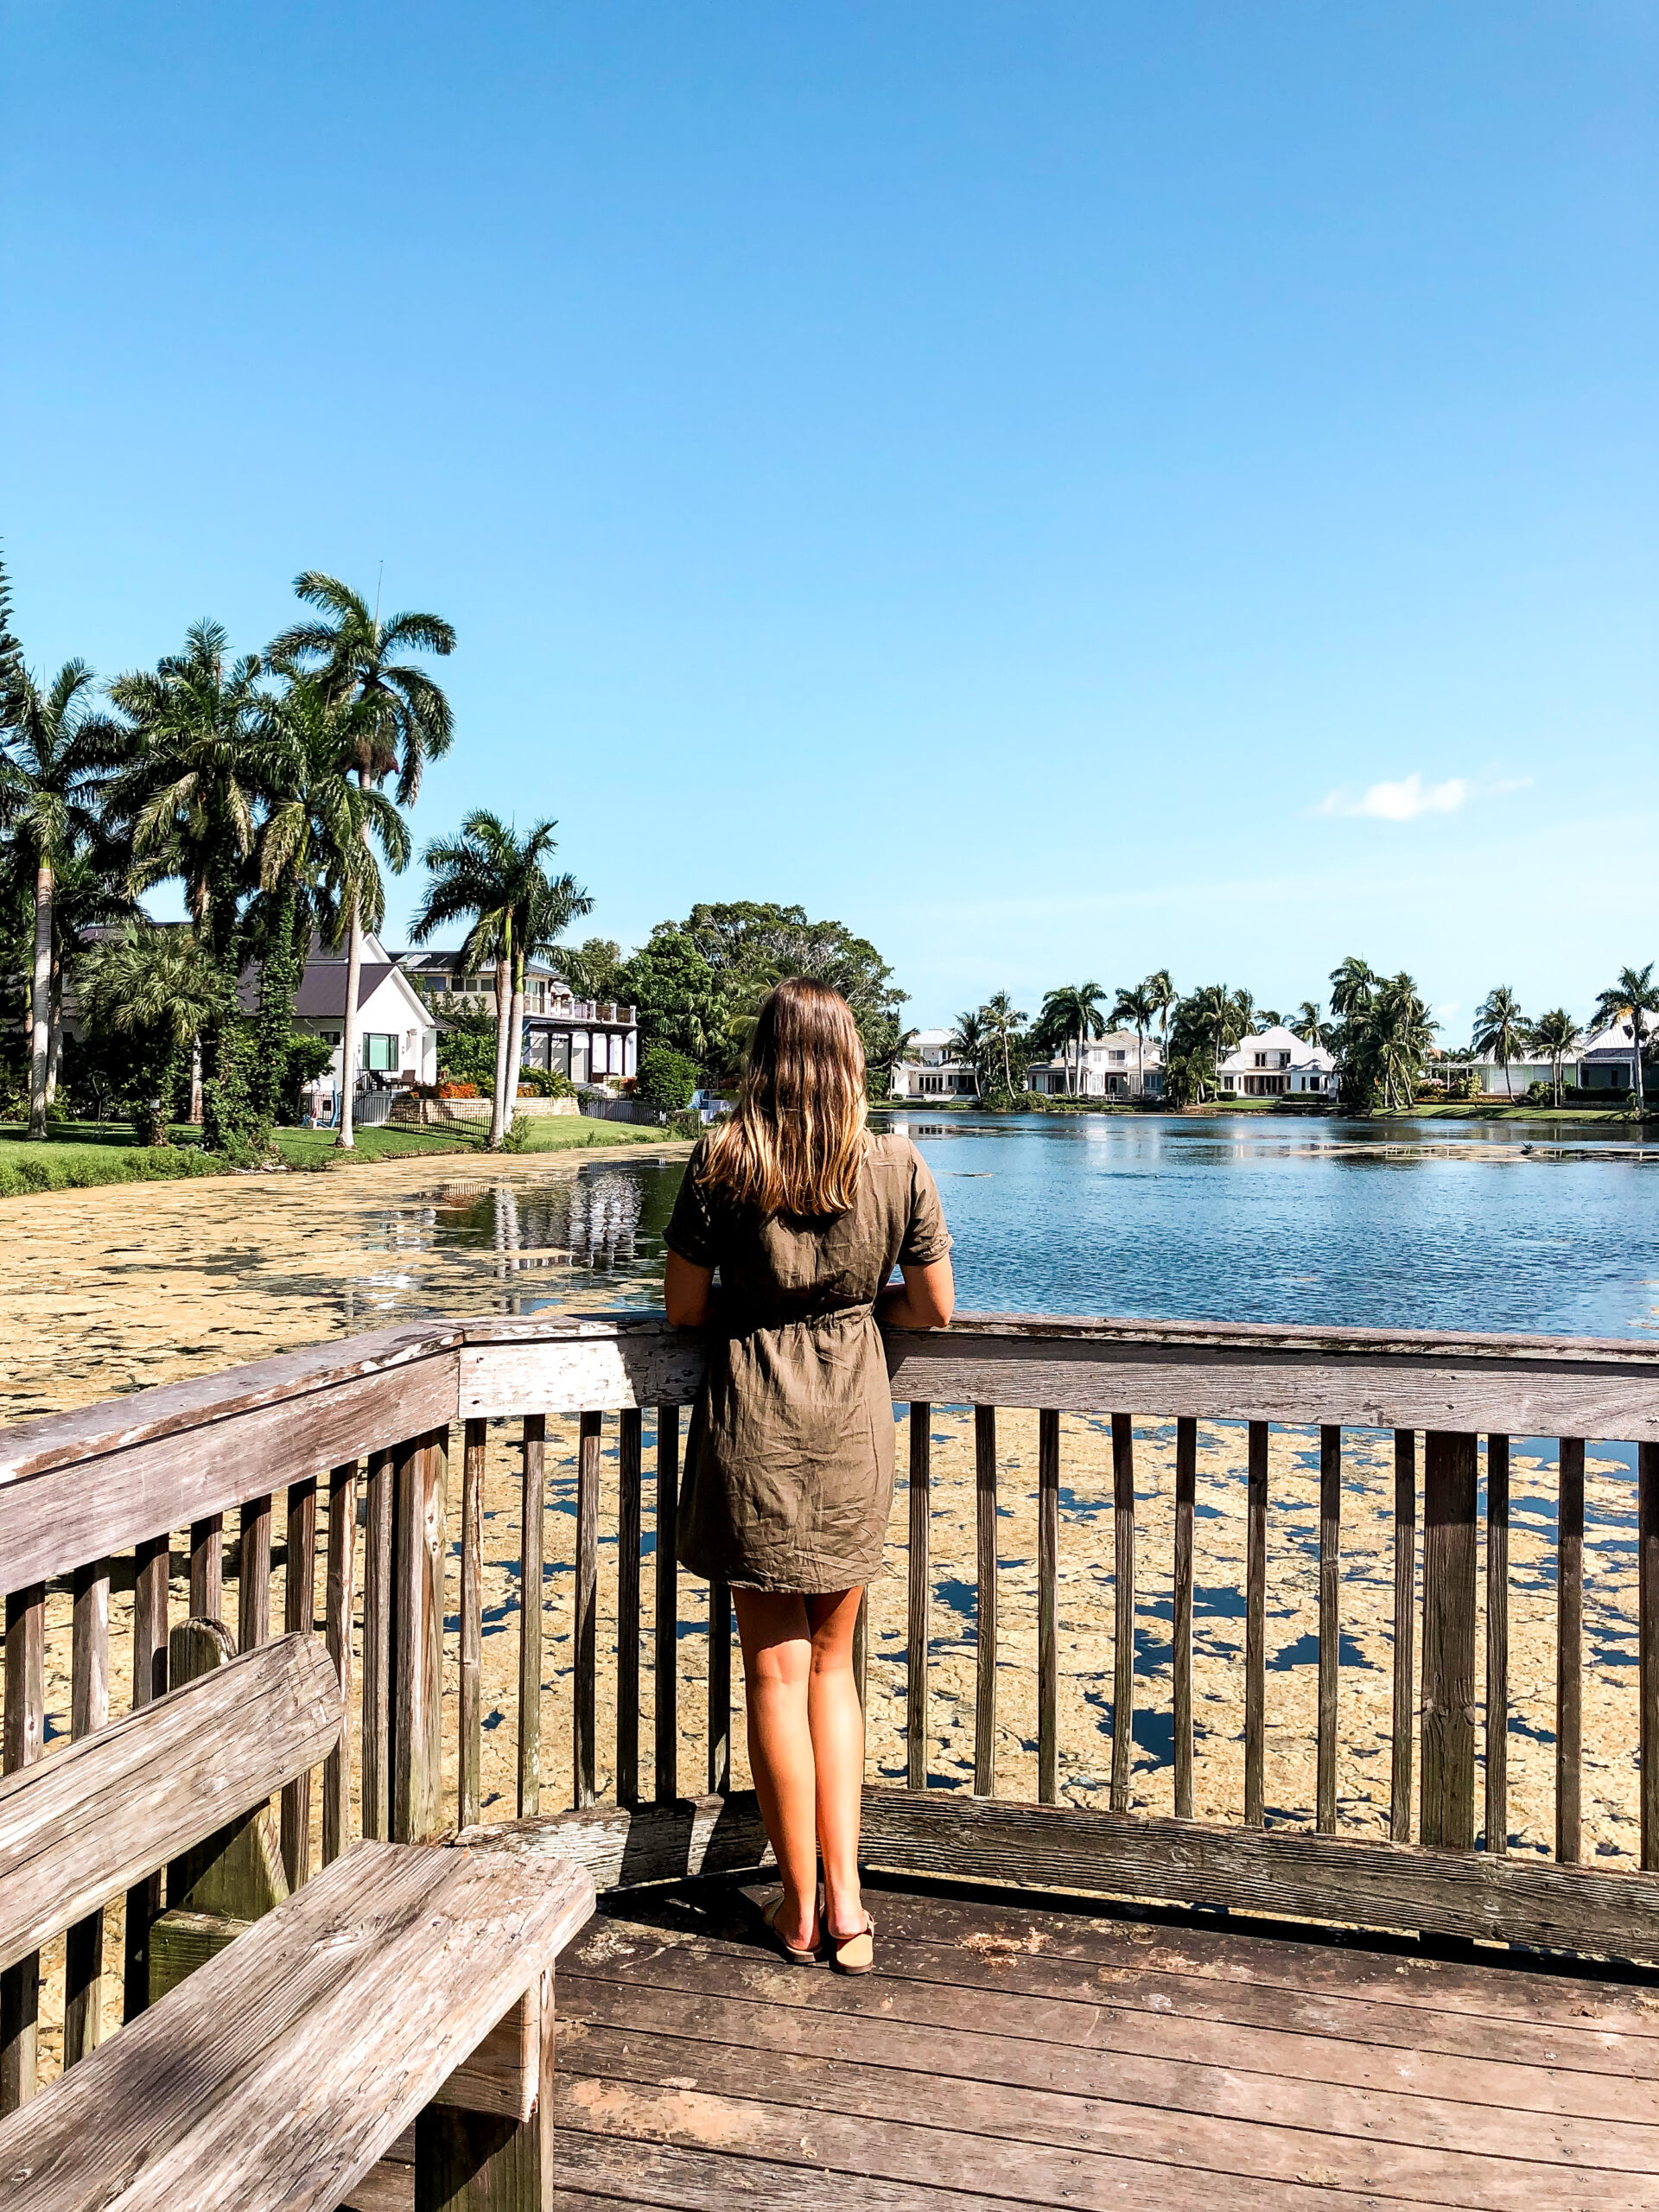 Rosie Andre - Naples, Florida (travel guide, south west Florida, Florida, swfl, Naples, USA, Naples beach)